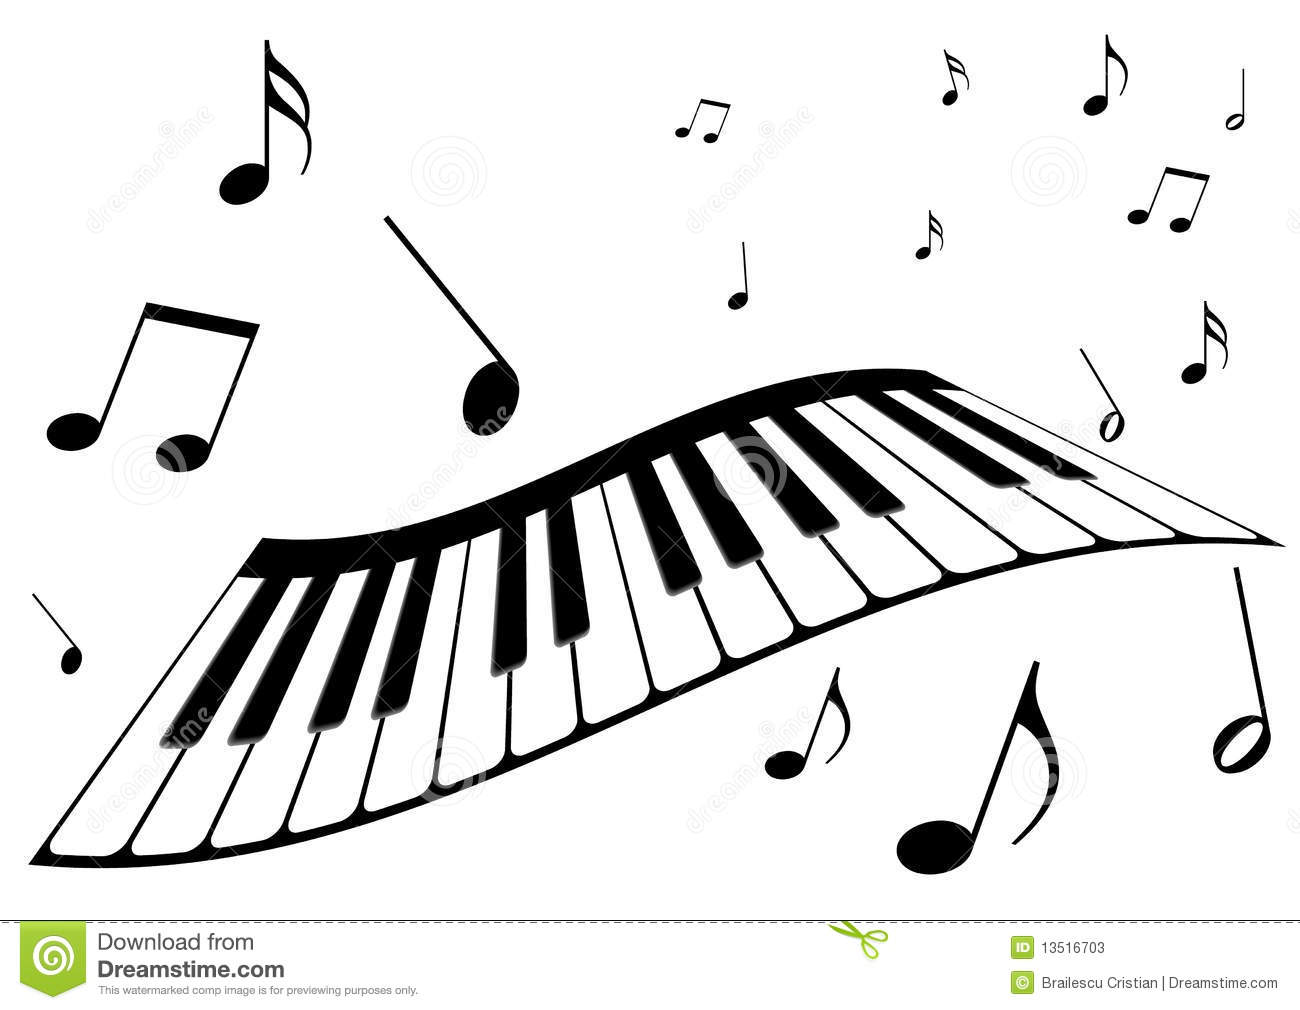 A piano and music notes stock vector. Illustration of